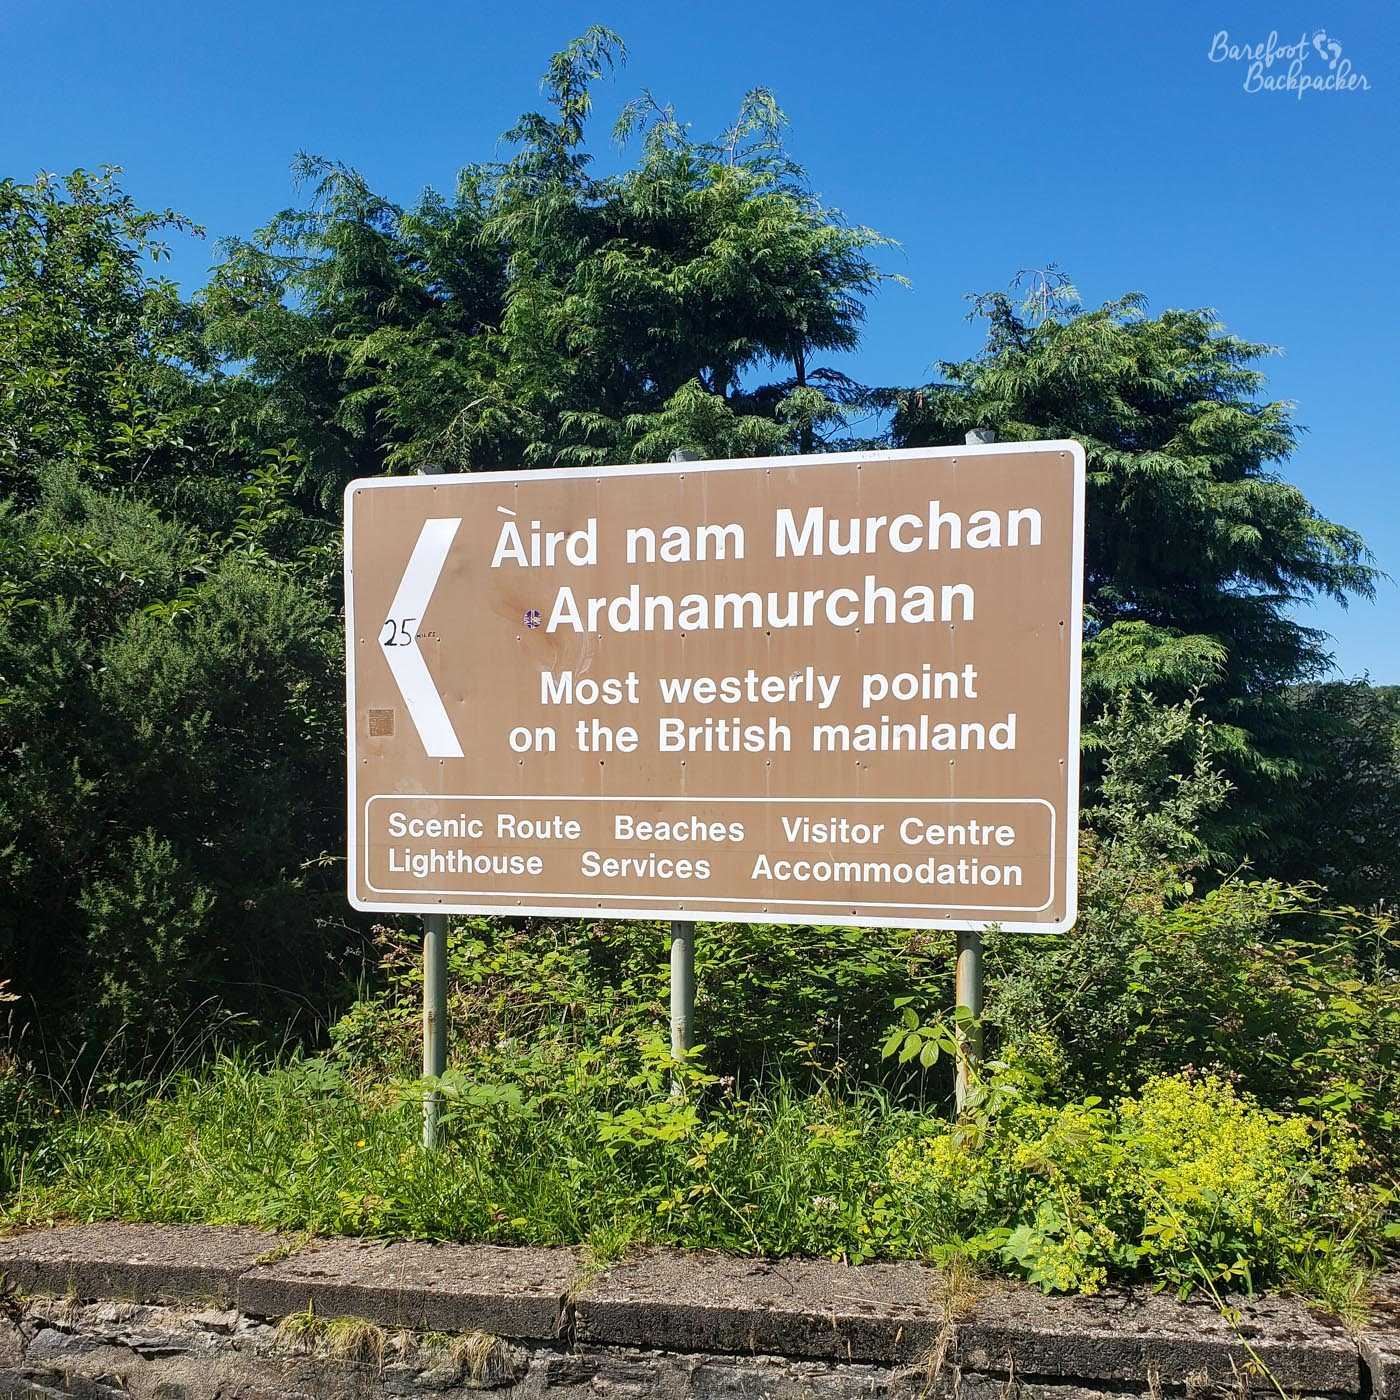 Large brown signpost directing people to 'Ardnamurchan, most westerly point on the British mainland', giving details of some of the facilities (beaches, lighthouse, accommodation, etc).